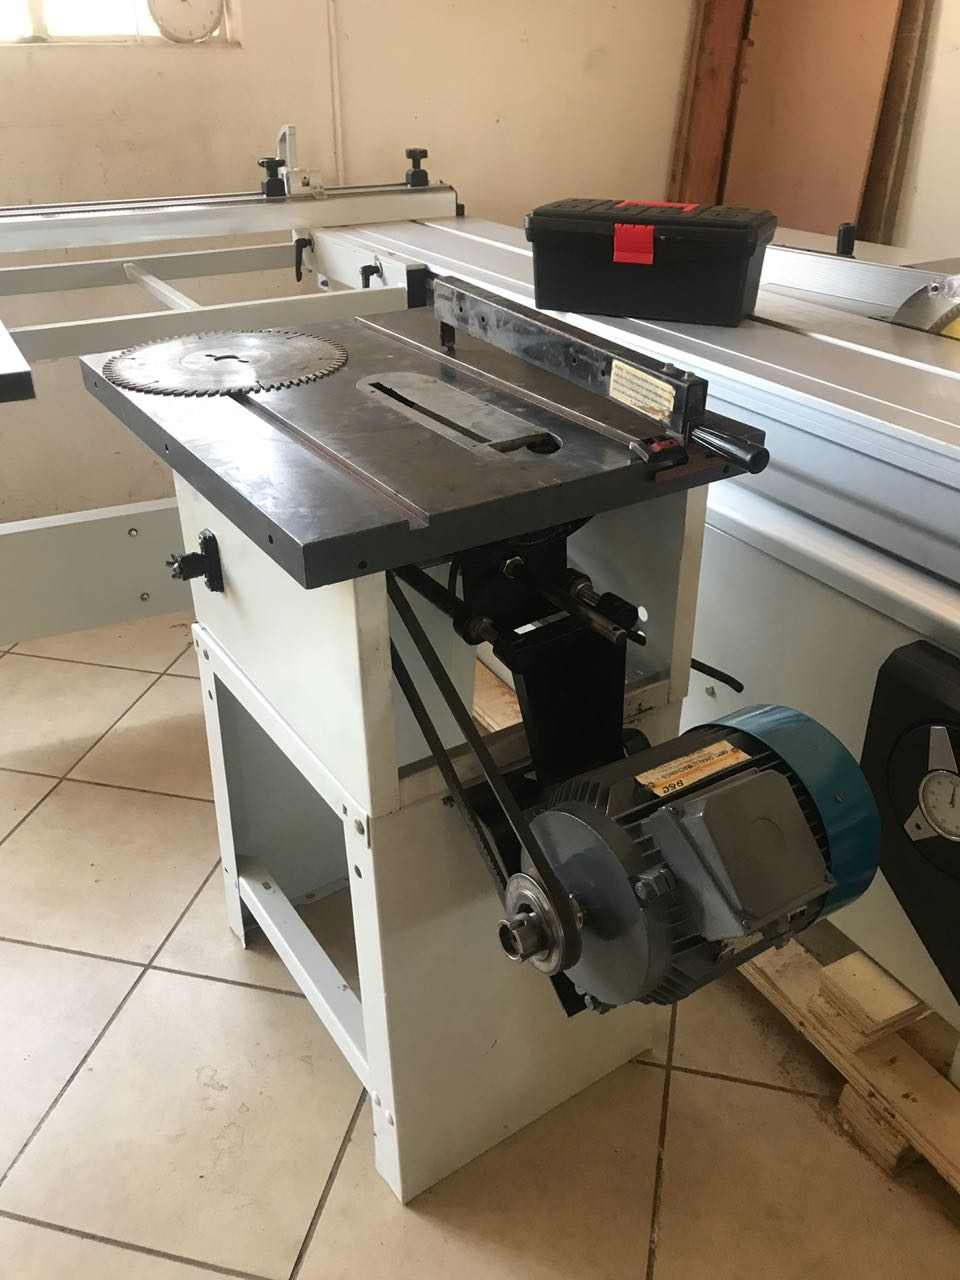 Table Saw Bench, 3.0kW, 380 Volt, Ø-254mm